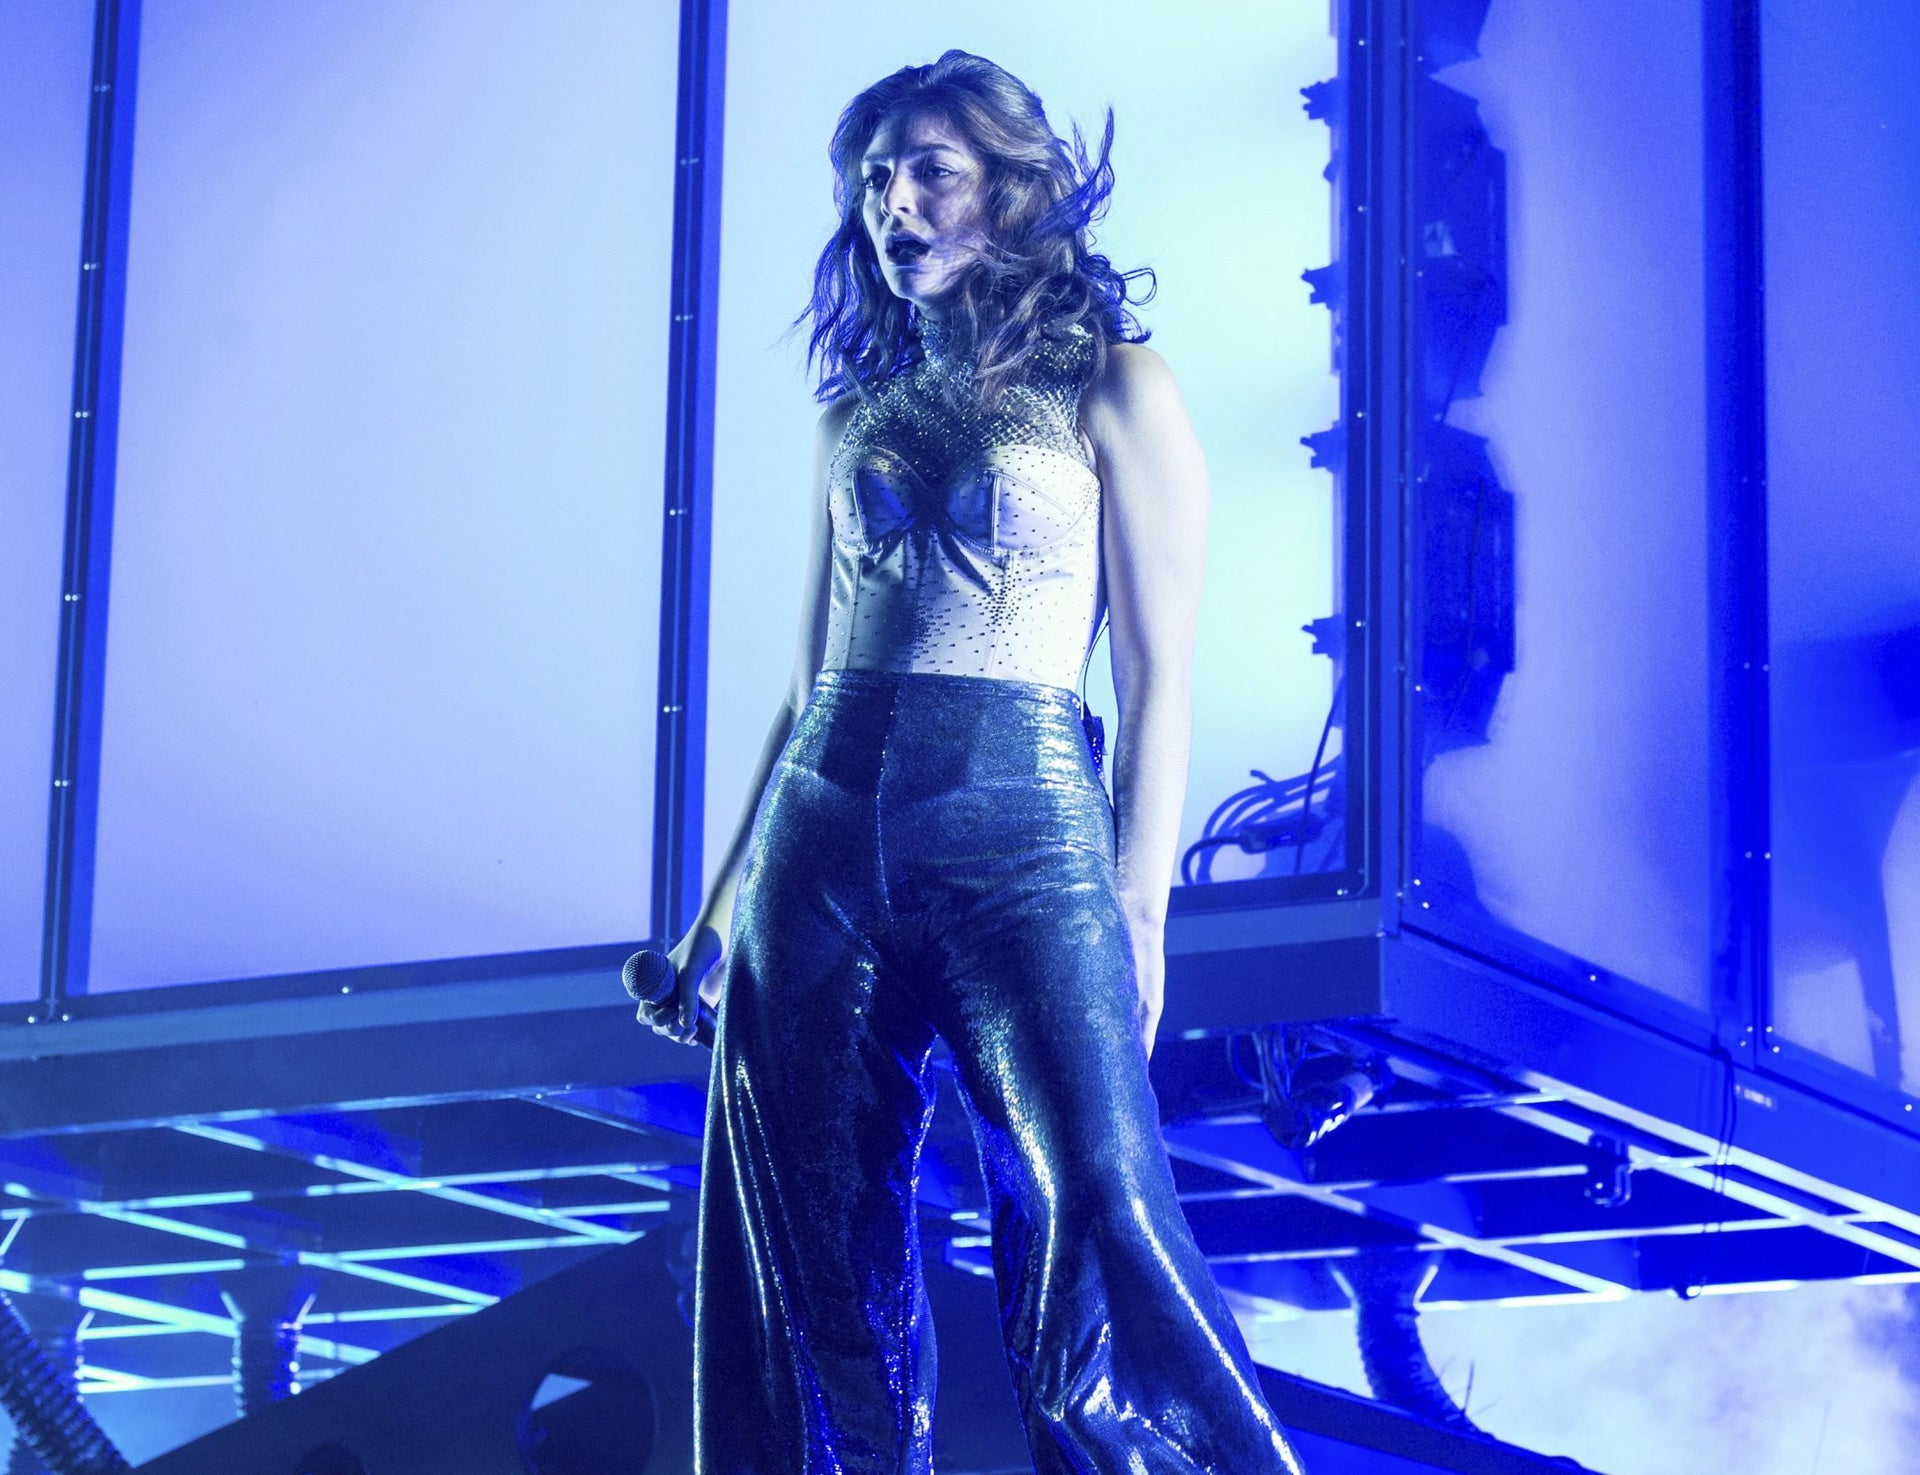 Lorde in concert. Confronted diplomatic, moral and economic implications